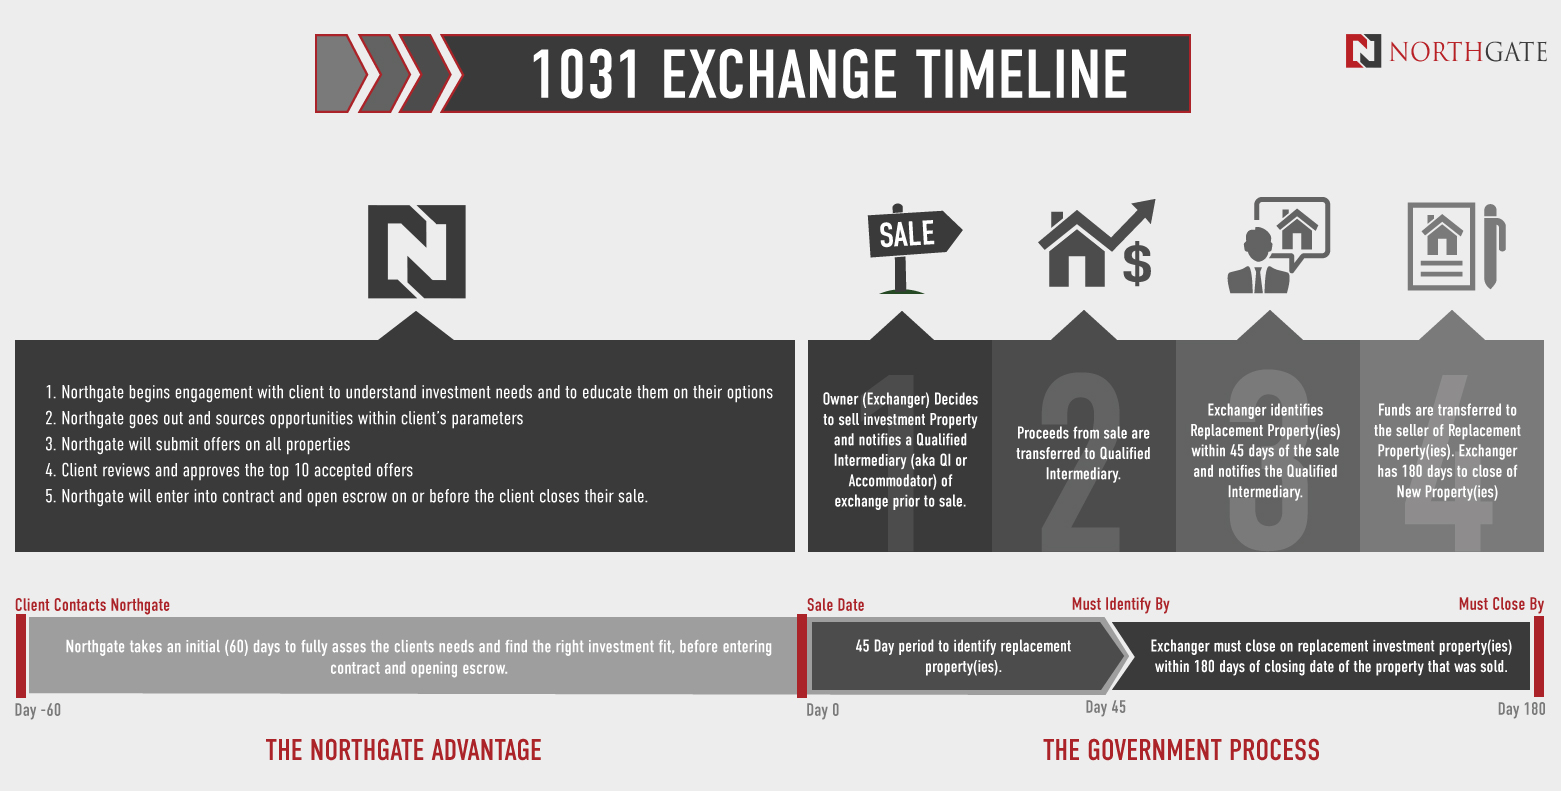 The advantage of using Northgate while navigating the 1031 Exchange Process.